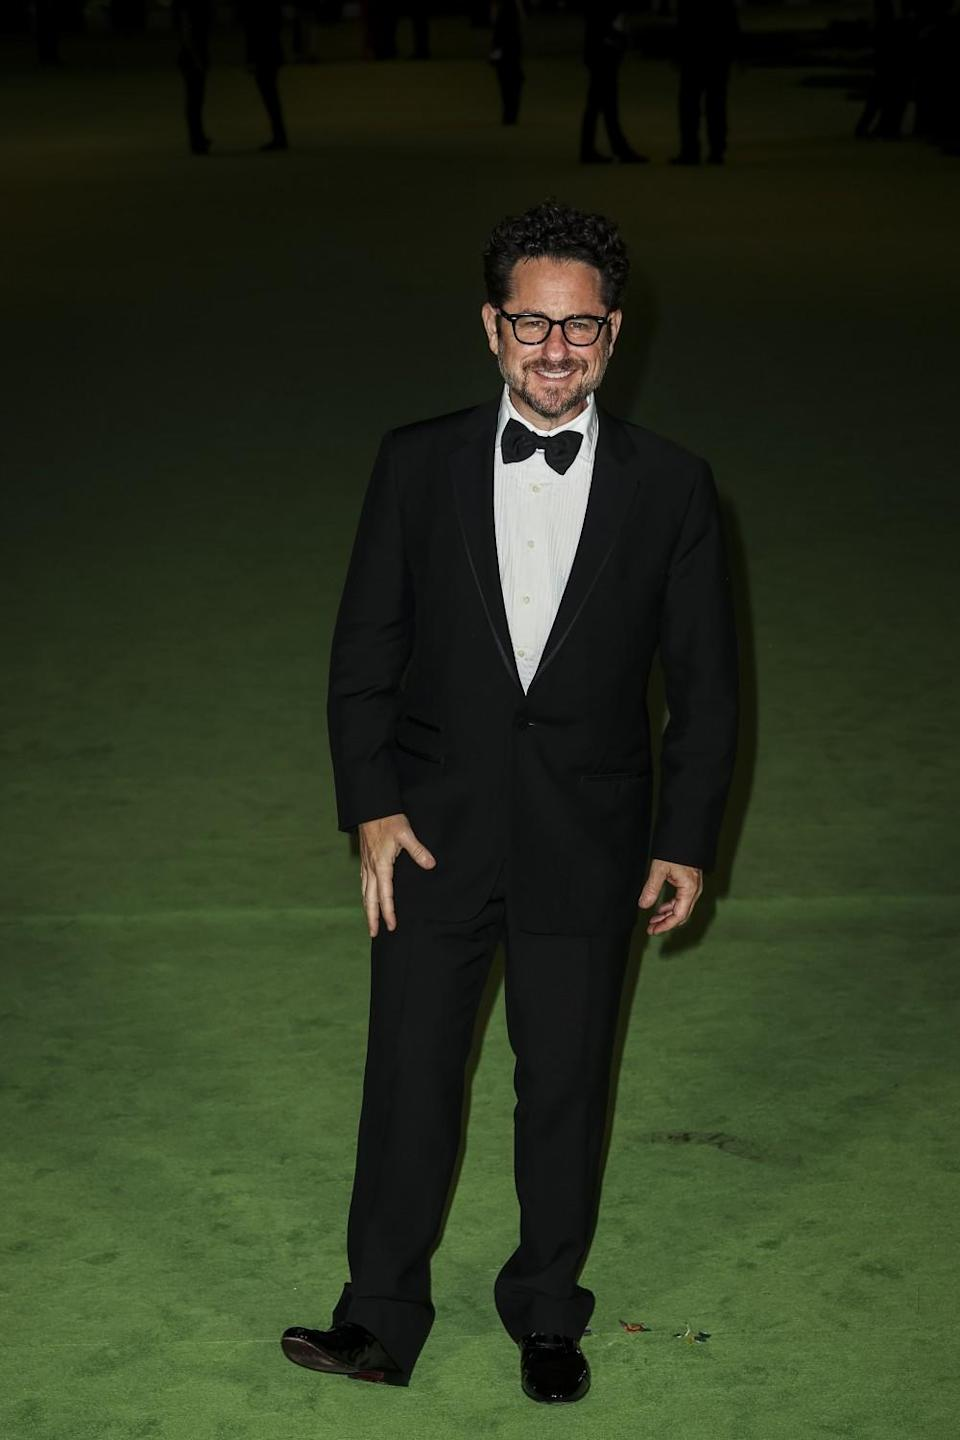 A man in a black tuxedo and bow tie posing on a green carpet